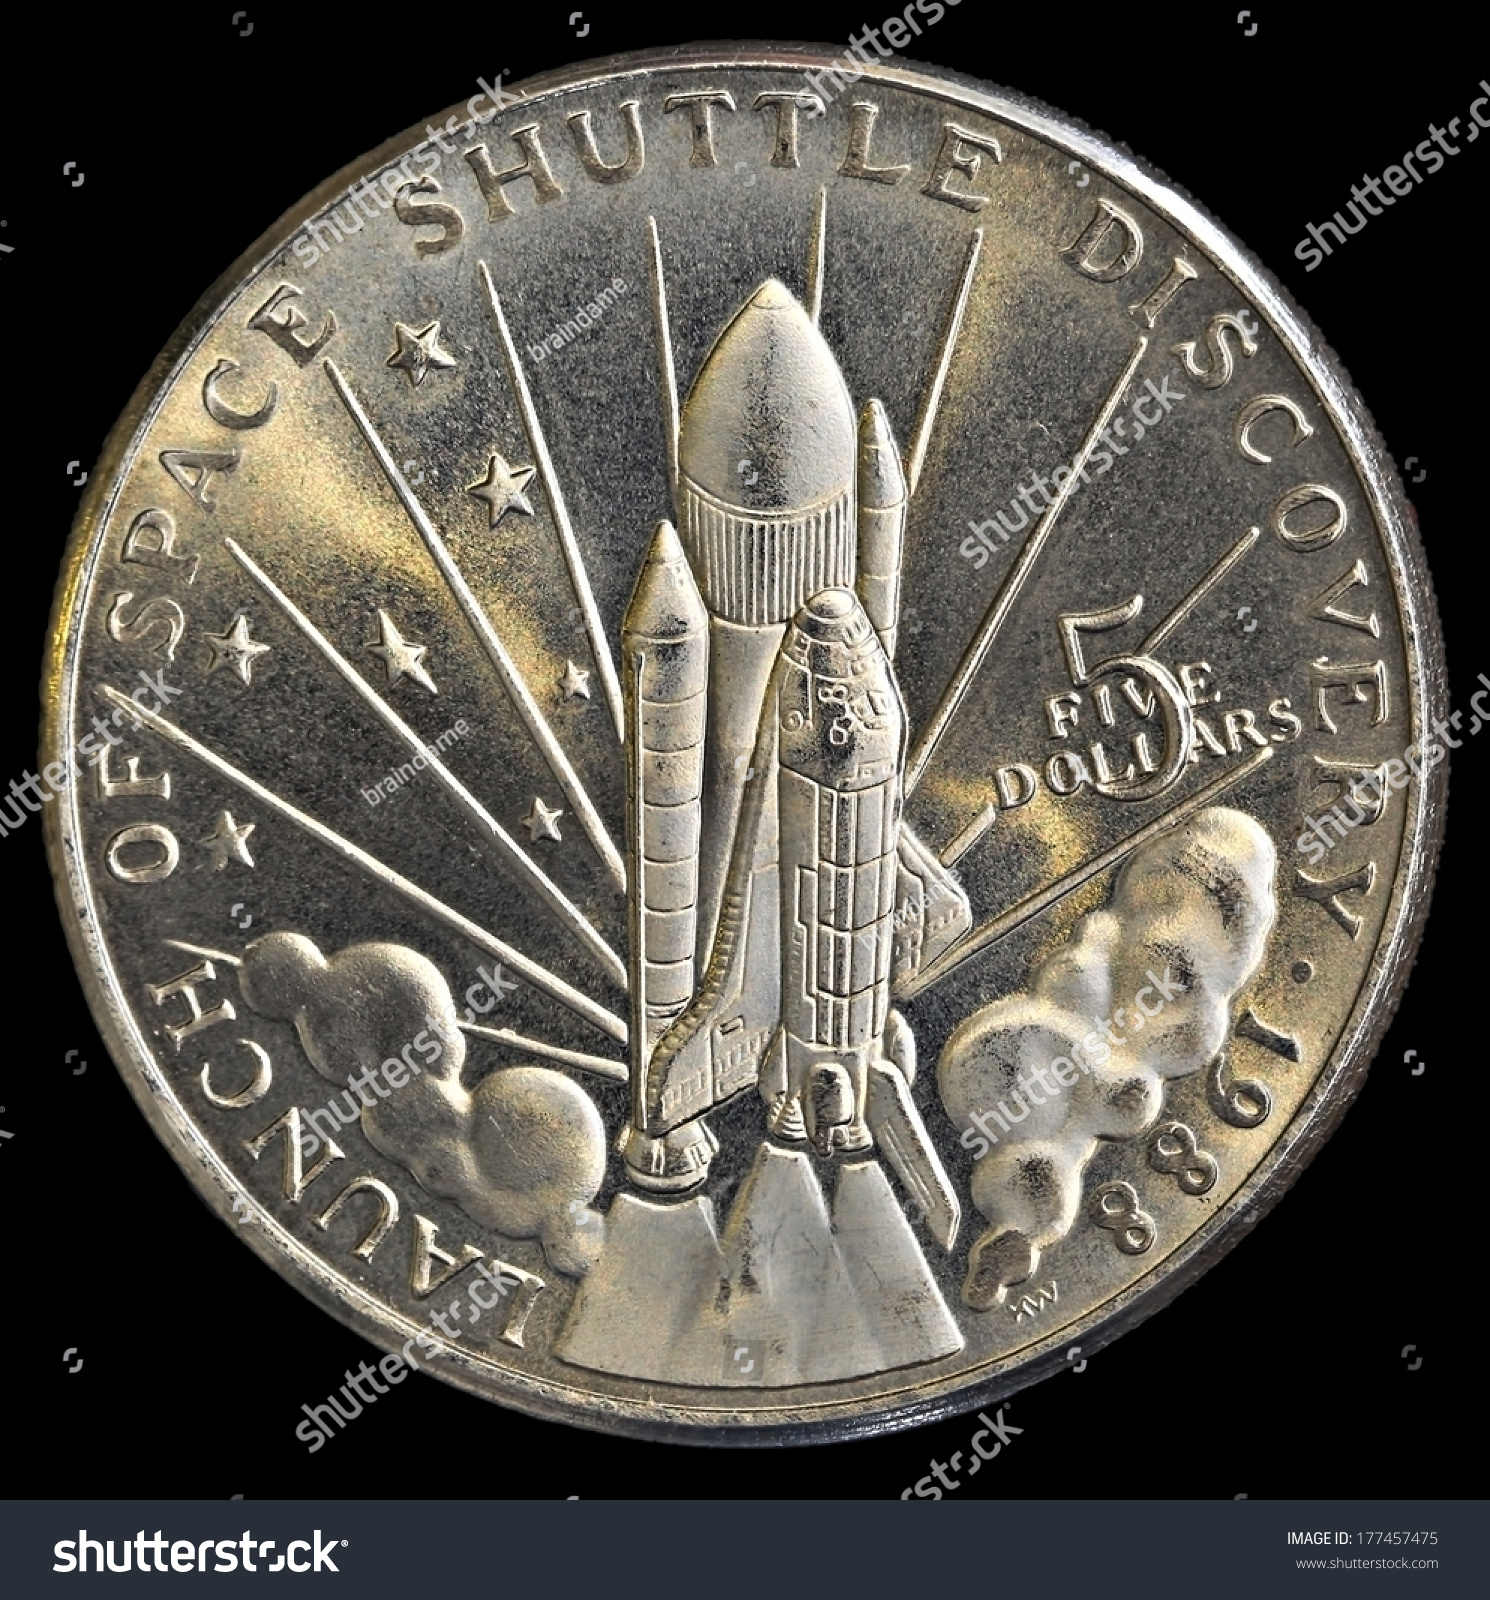 space shuttle discovery 5 dollar commemorative coin - photo #21